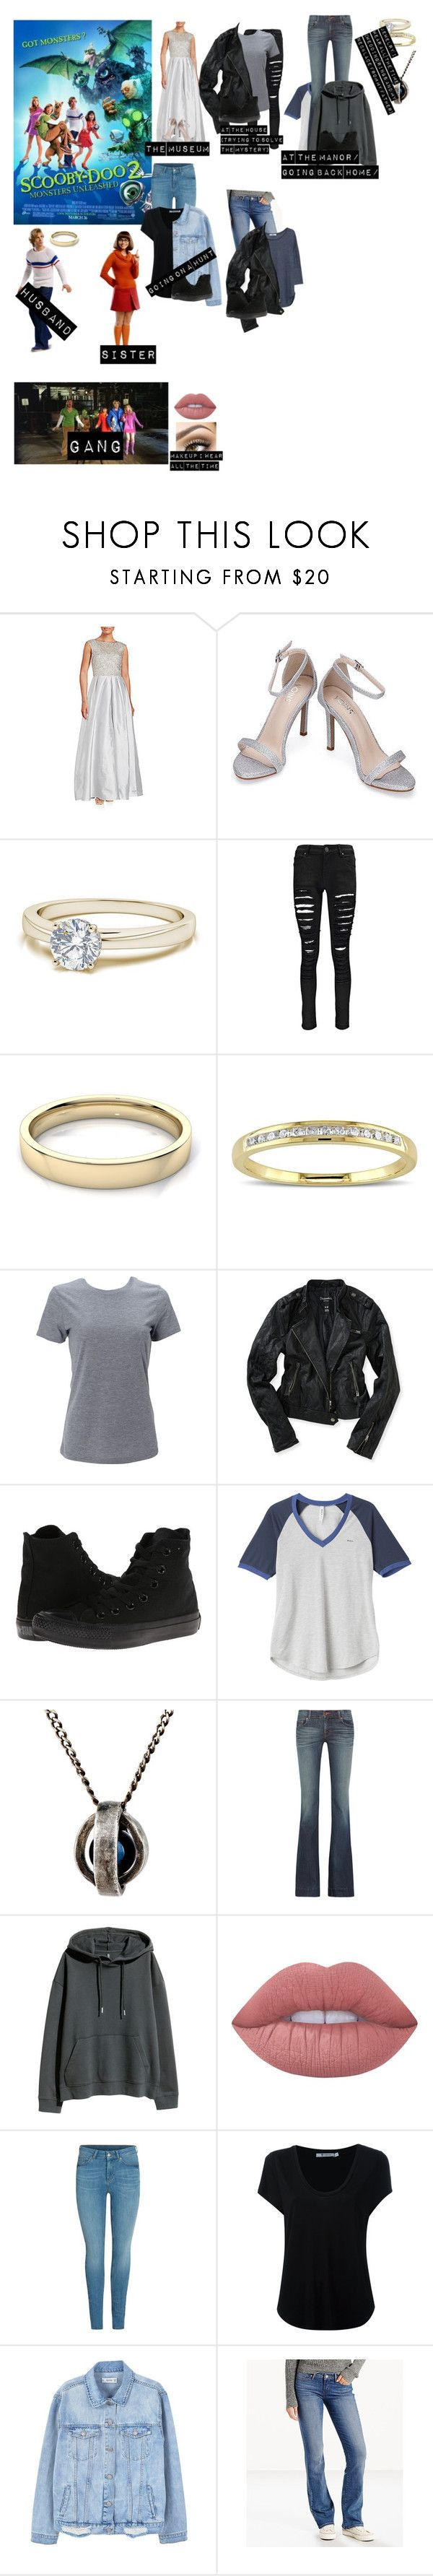 """""""Me in: 'Scooby Doo 2' [re-made]"""" by j-j-fandoms ❤ liked on Polyvore featuring Aidan Mattox, Boohoo, Miadora, Simplex Apparel, Aéropostale, Converse, RVCA, title of work, J Brand and H&M"""